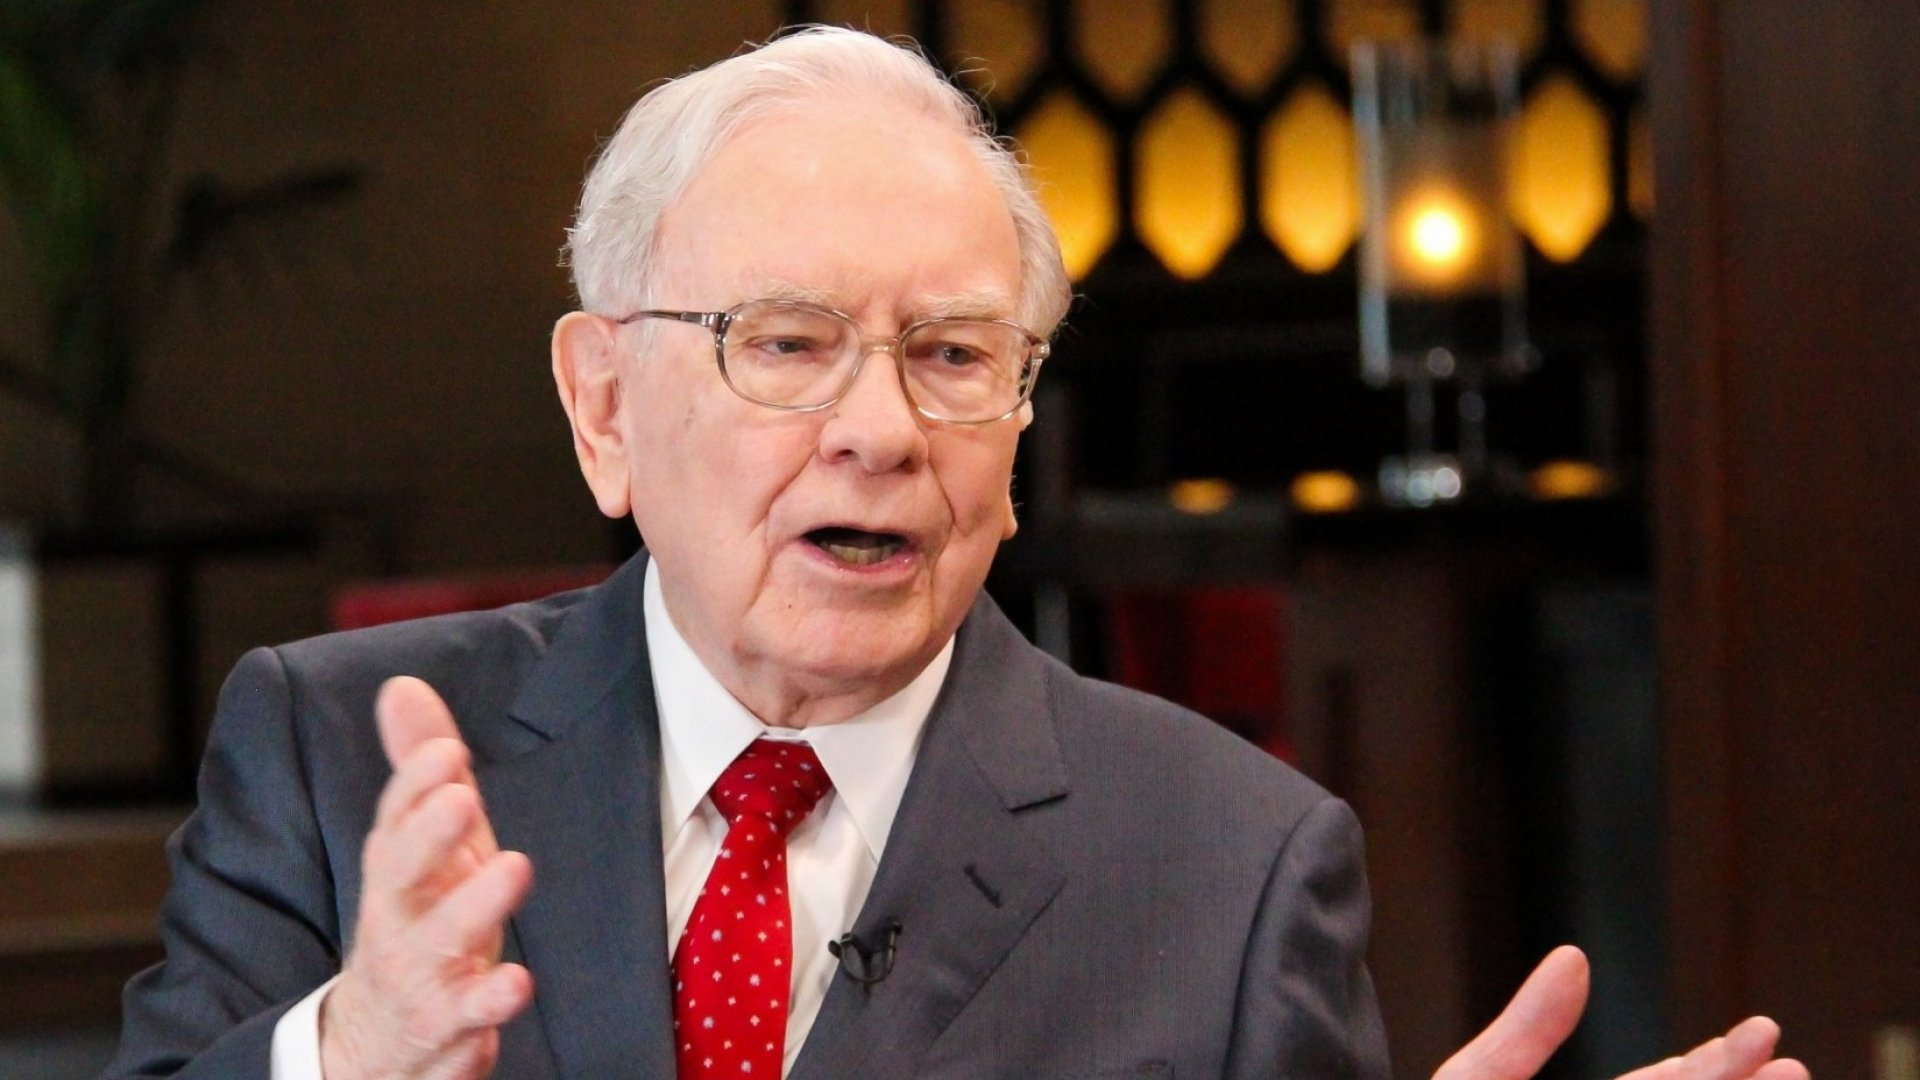 In His Annual Shareholder Letter, Warren Buffett Showed Why His Favorite Rhetorical Tool Is So Effective